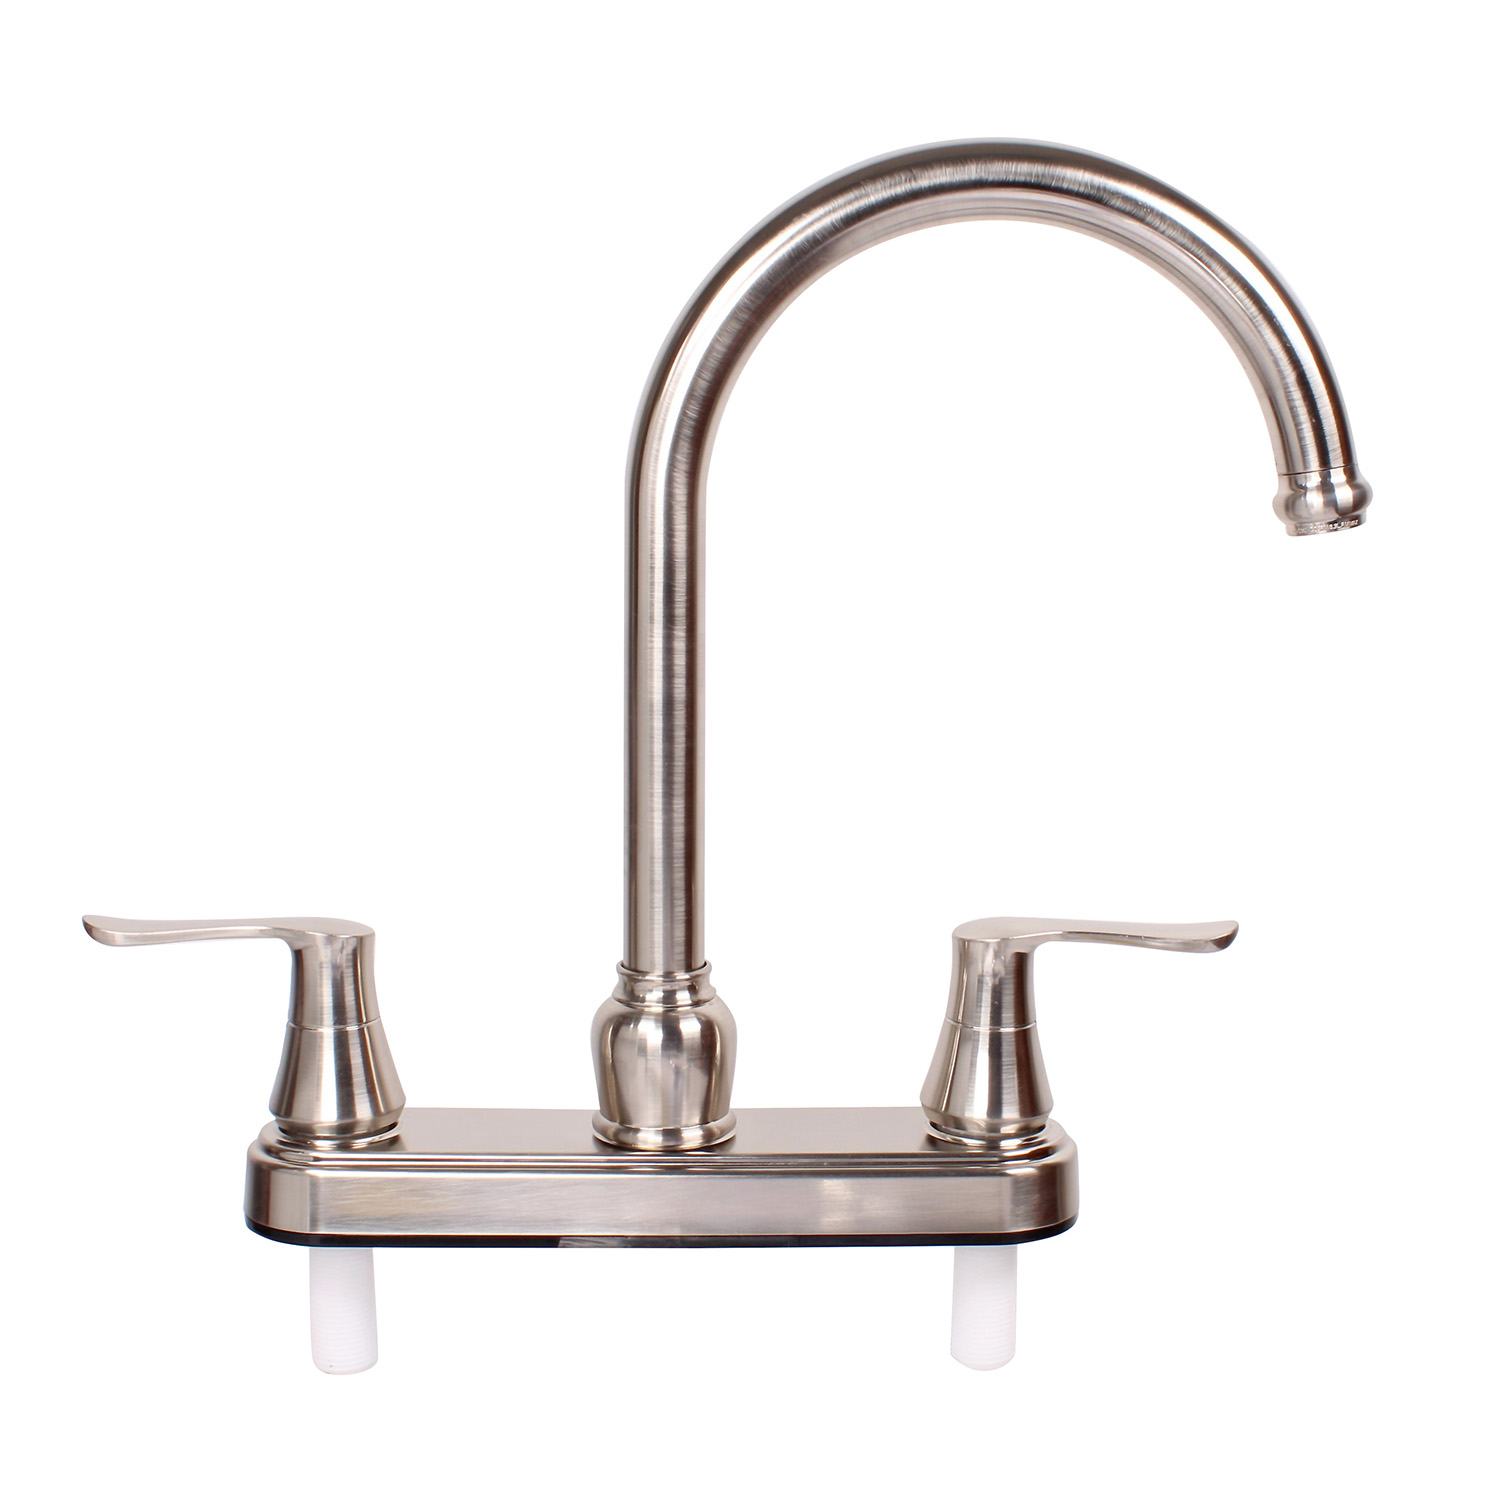 empire faucets 8 rv kitchen faucet head replacement brushed nickel handles walmart com